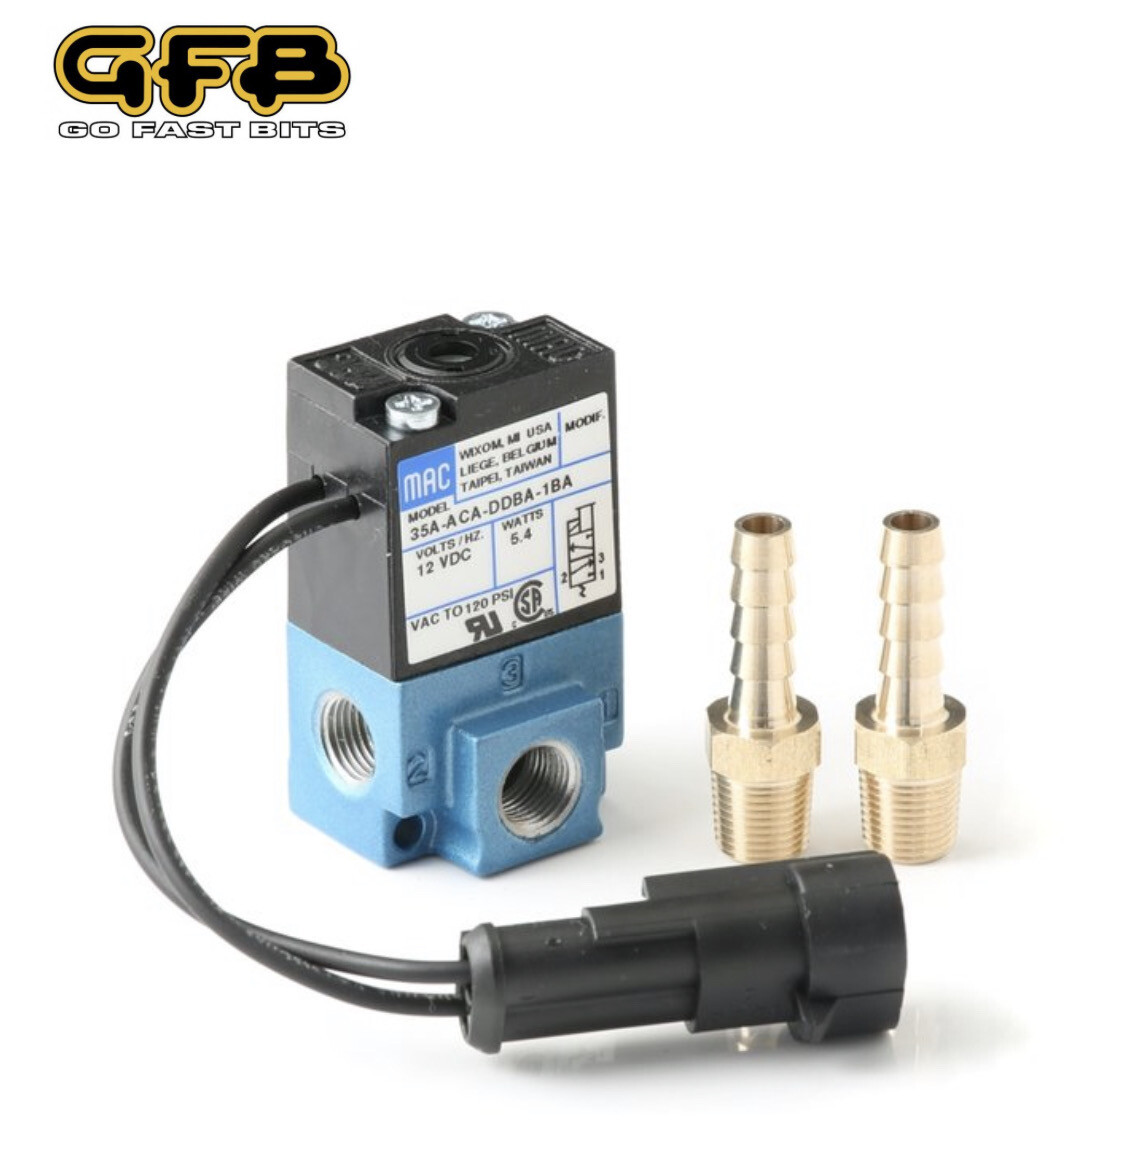 GFB 3 PORT BOOST SOLENOID